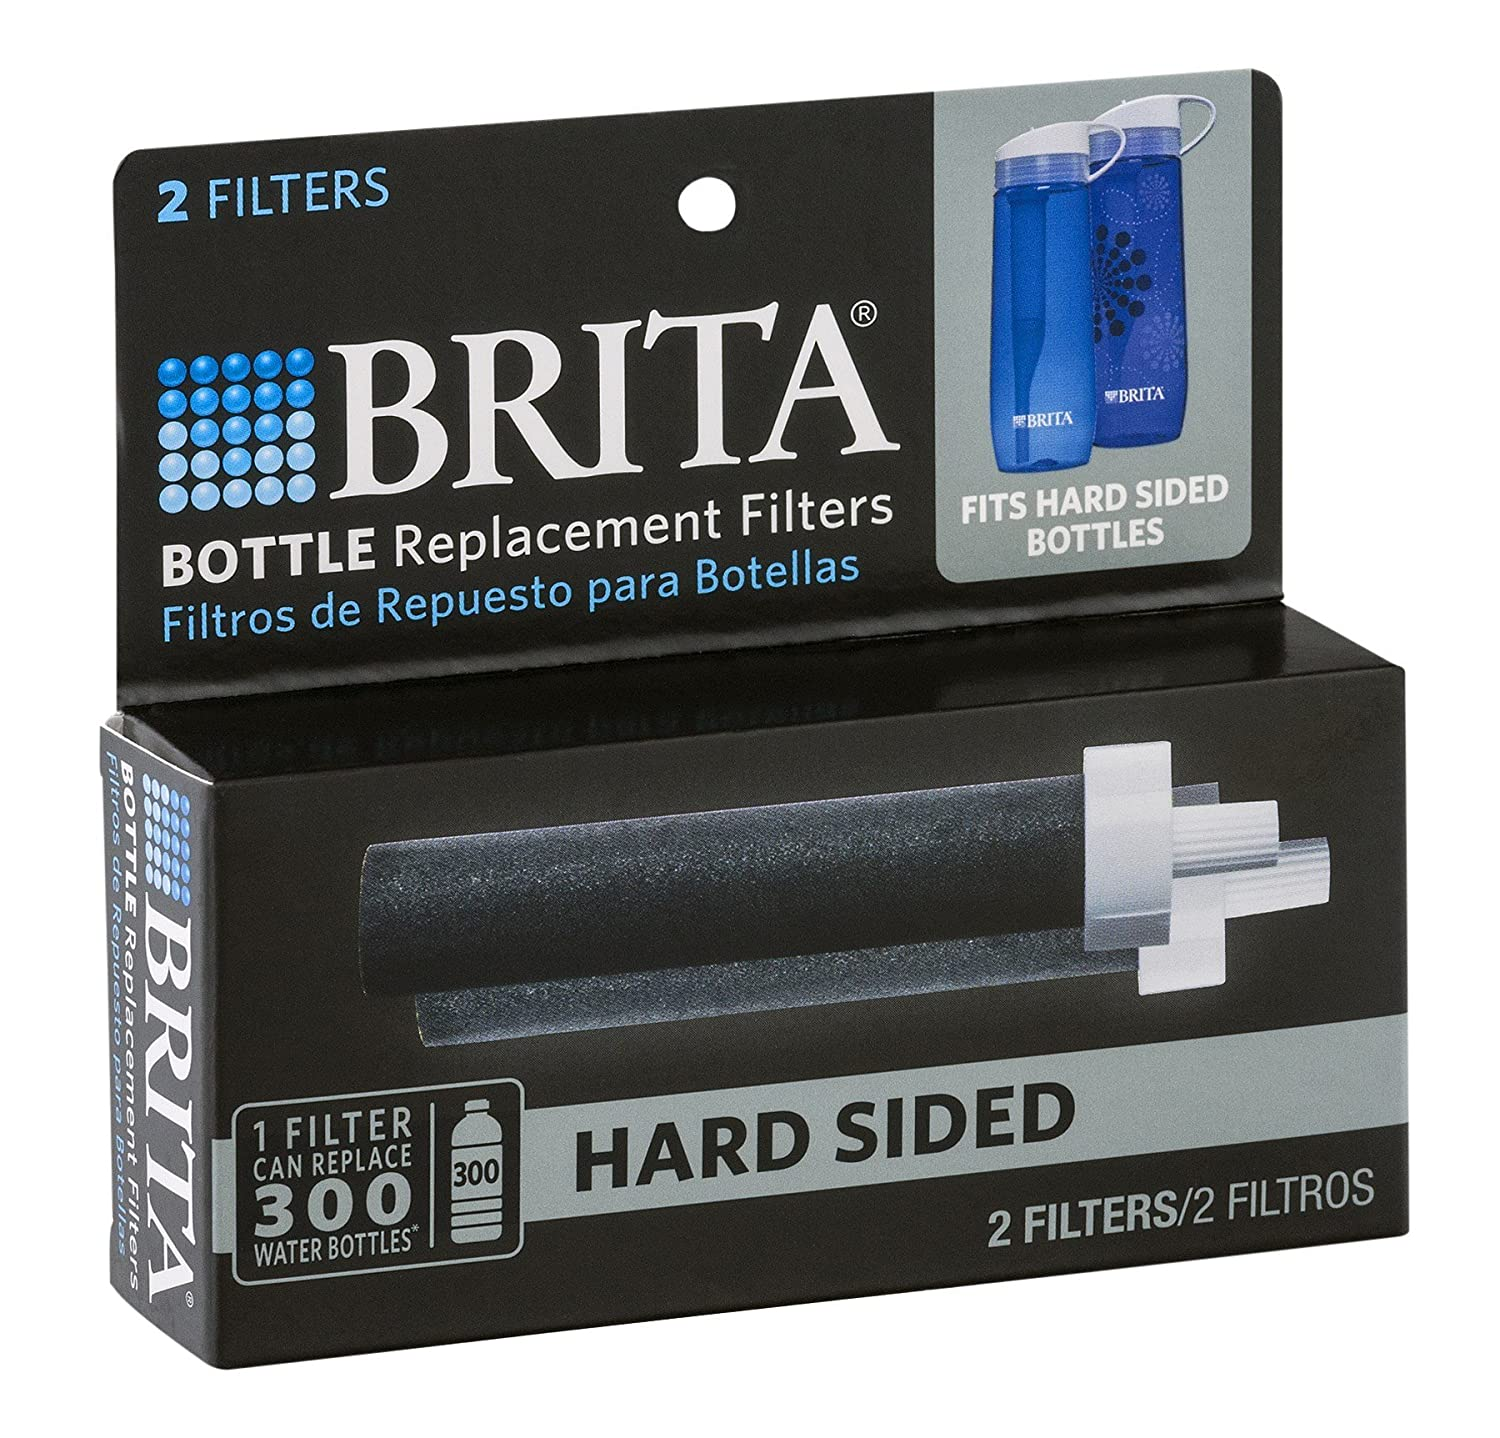 Amazon.com: Brita Bottle Replace Filters - 3 Pack - 6 Total Filters ...